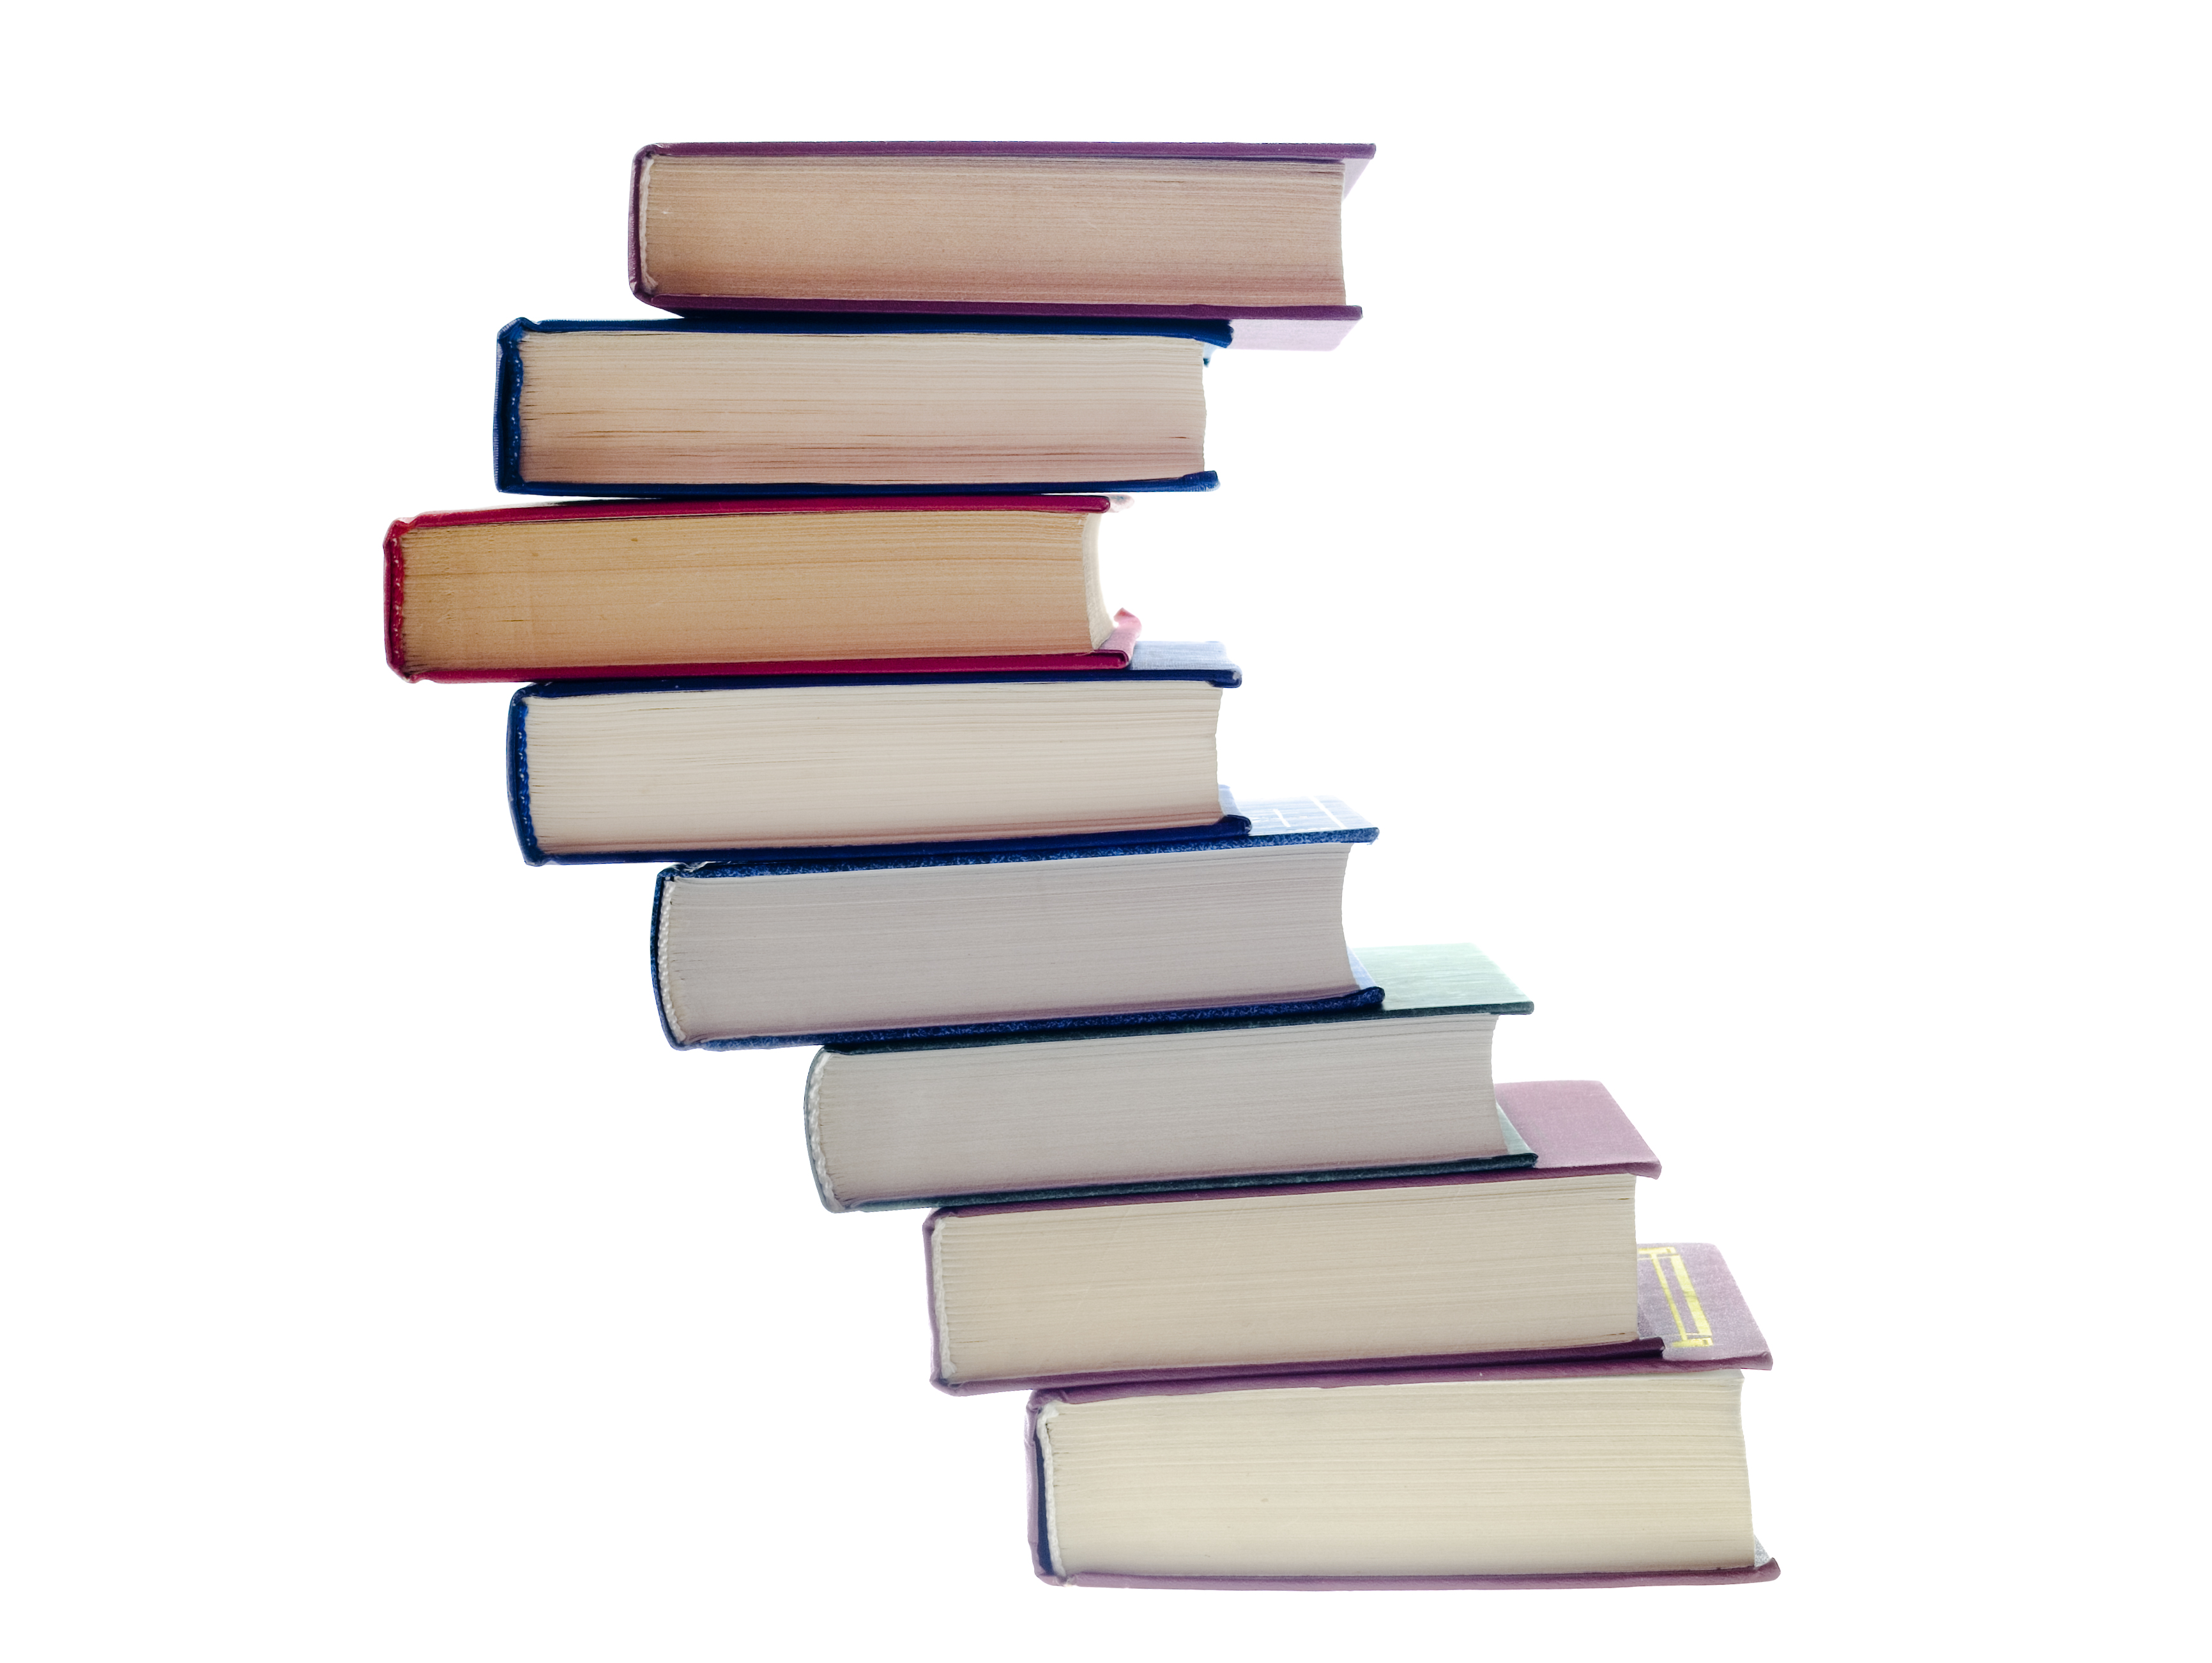 Books, Book, Isolated, Pile, Papers, HQ Photo